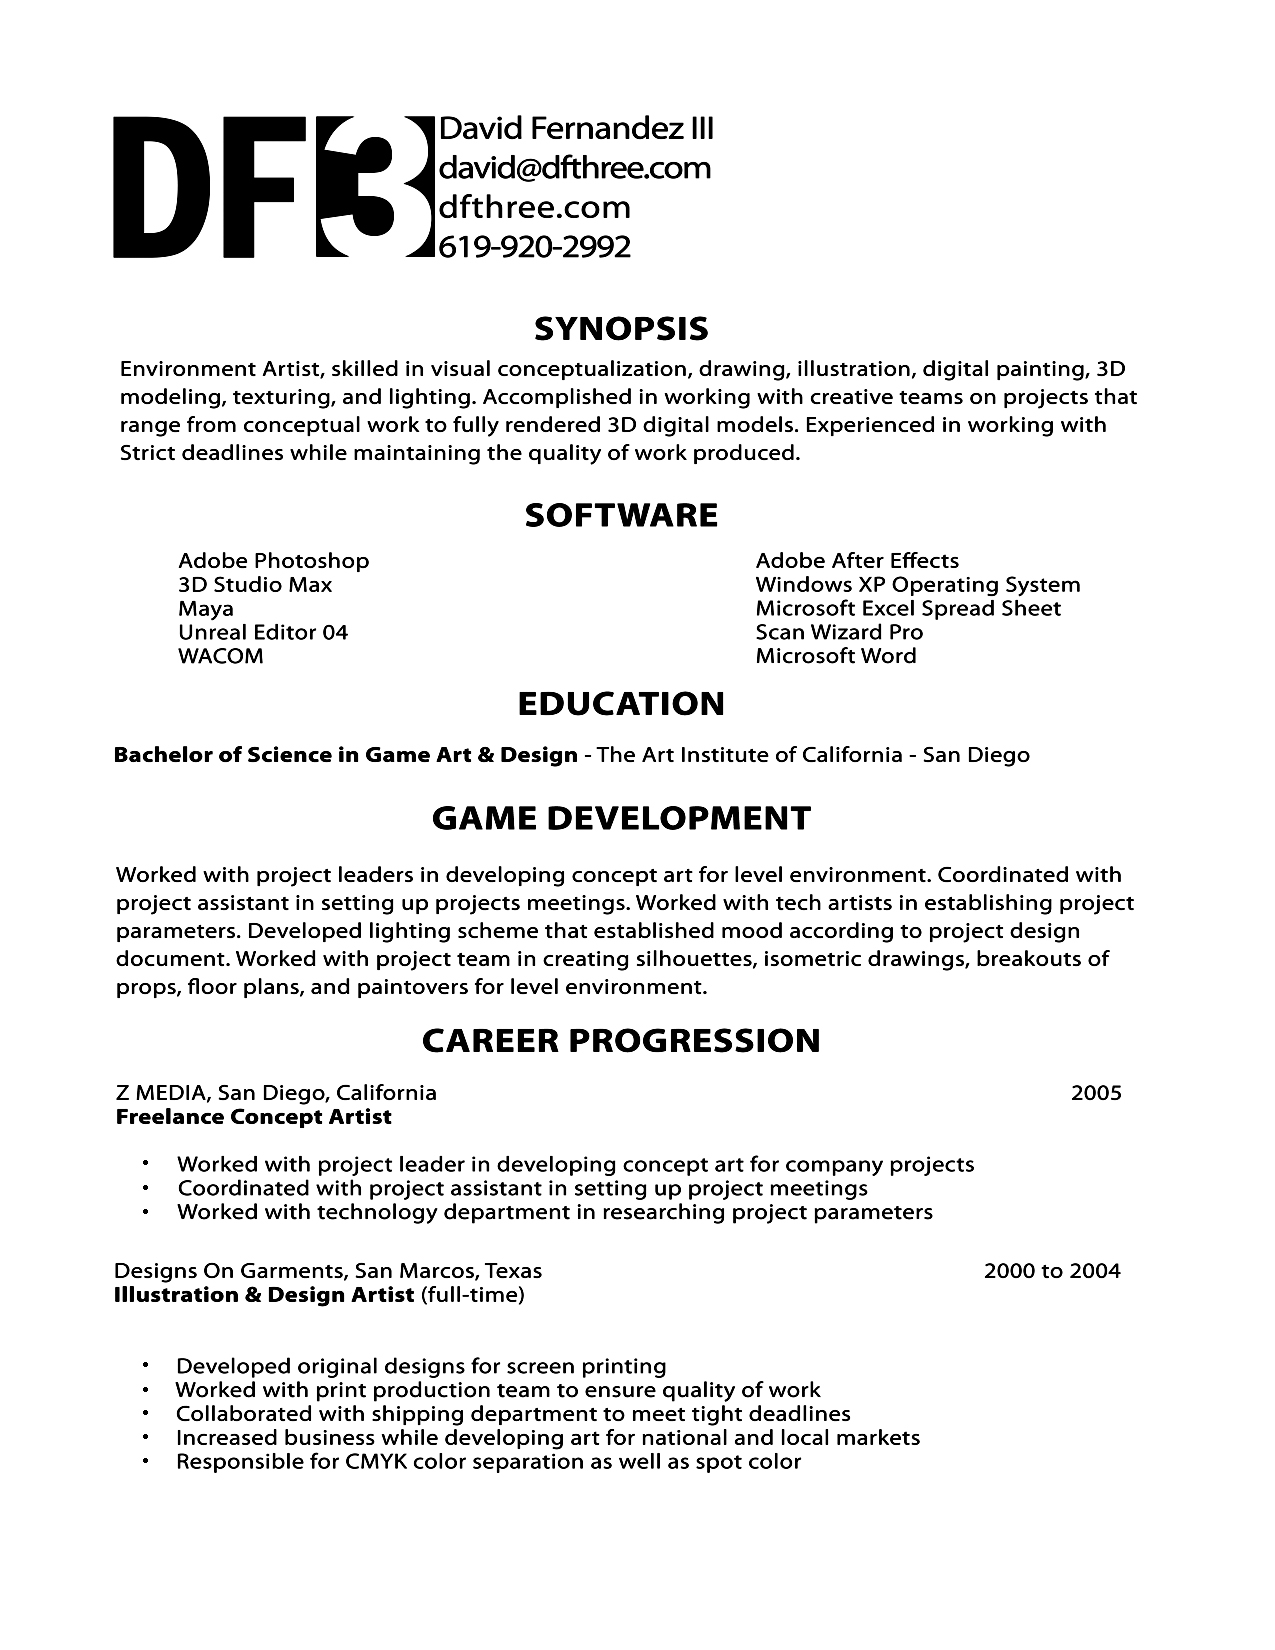 Opposenewapstandardsus  Unique Game Developer Resume Game Tester Resume Sample Game Tester  With Hot Better Jobs Faster With Comely Examples Of Objectives In A Resume Also Cissp Resume In Addition Admissions Counselor Resume And Office Manager Resumes As Well As Customer Support Resume Additionally Retail Resume Samples From Kelseymarieco With Opposenewapstandardsus  Hot Game Developer Resume Game Tester Resume Sample Game Tester  With Comely Better Jobs Faster And Unique Examples Of Objectives In A Resume Also Cissp Resume In Addition Admissions Counselor Resume From Kelseymarieco